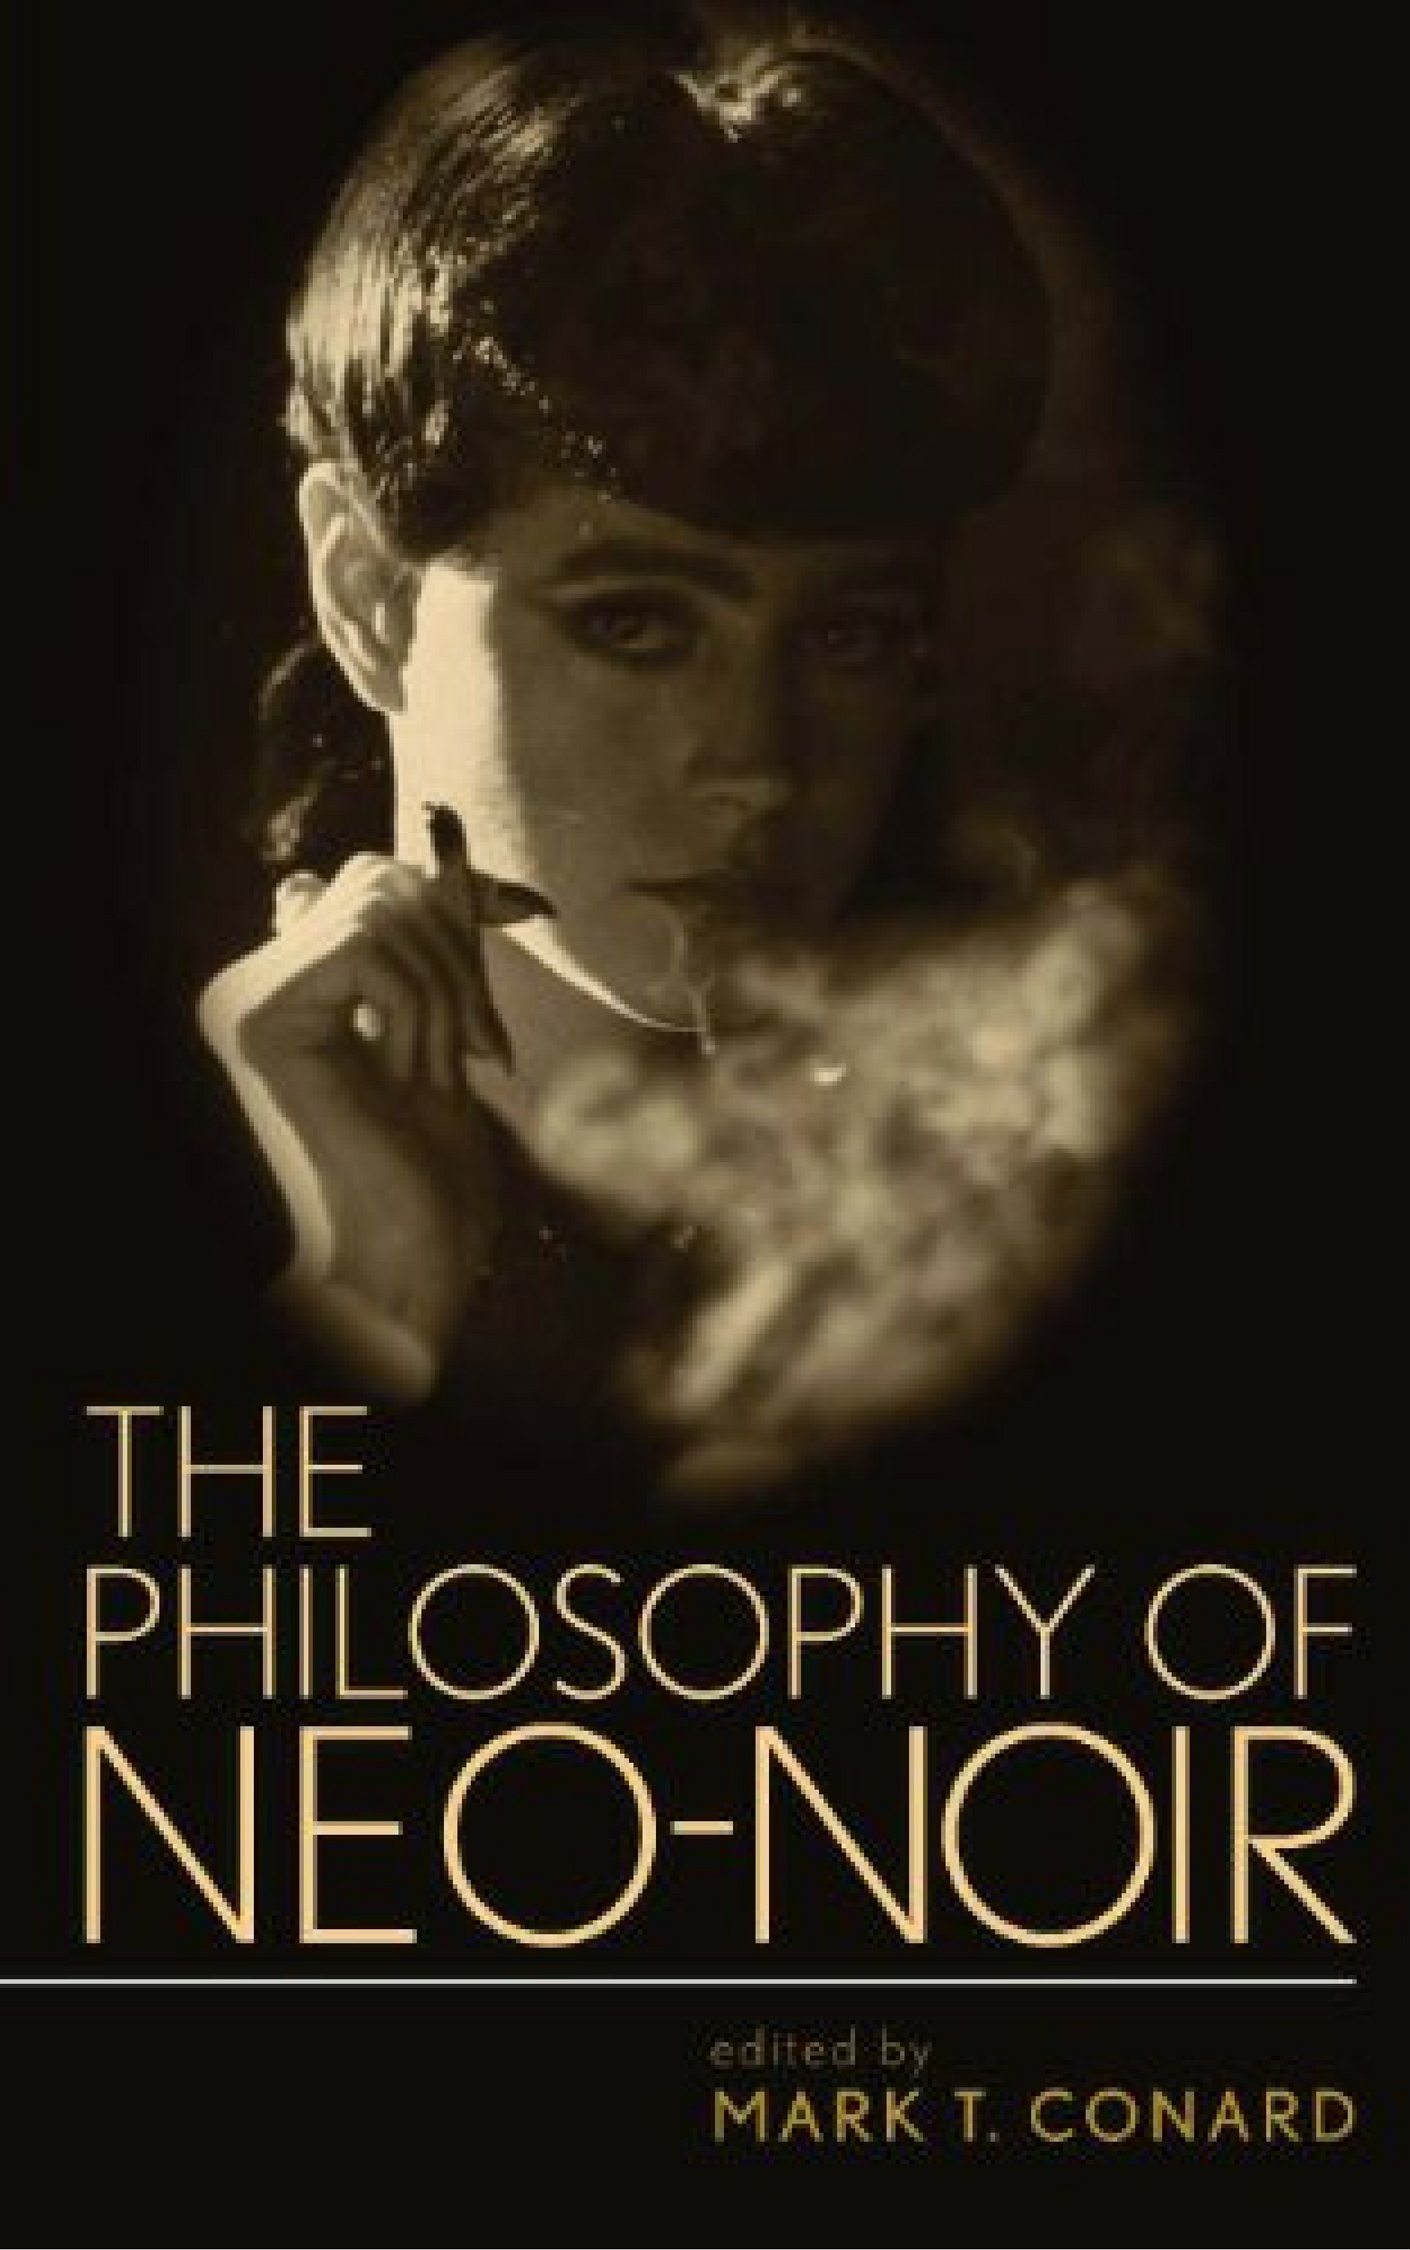 The Philosophy Of A Hashtag Strategy: My Book Review Of 'The Philosophy Of Neo-Noir' (2007)